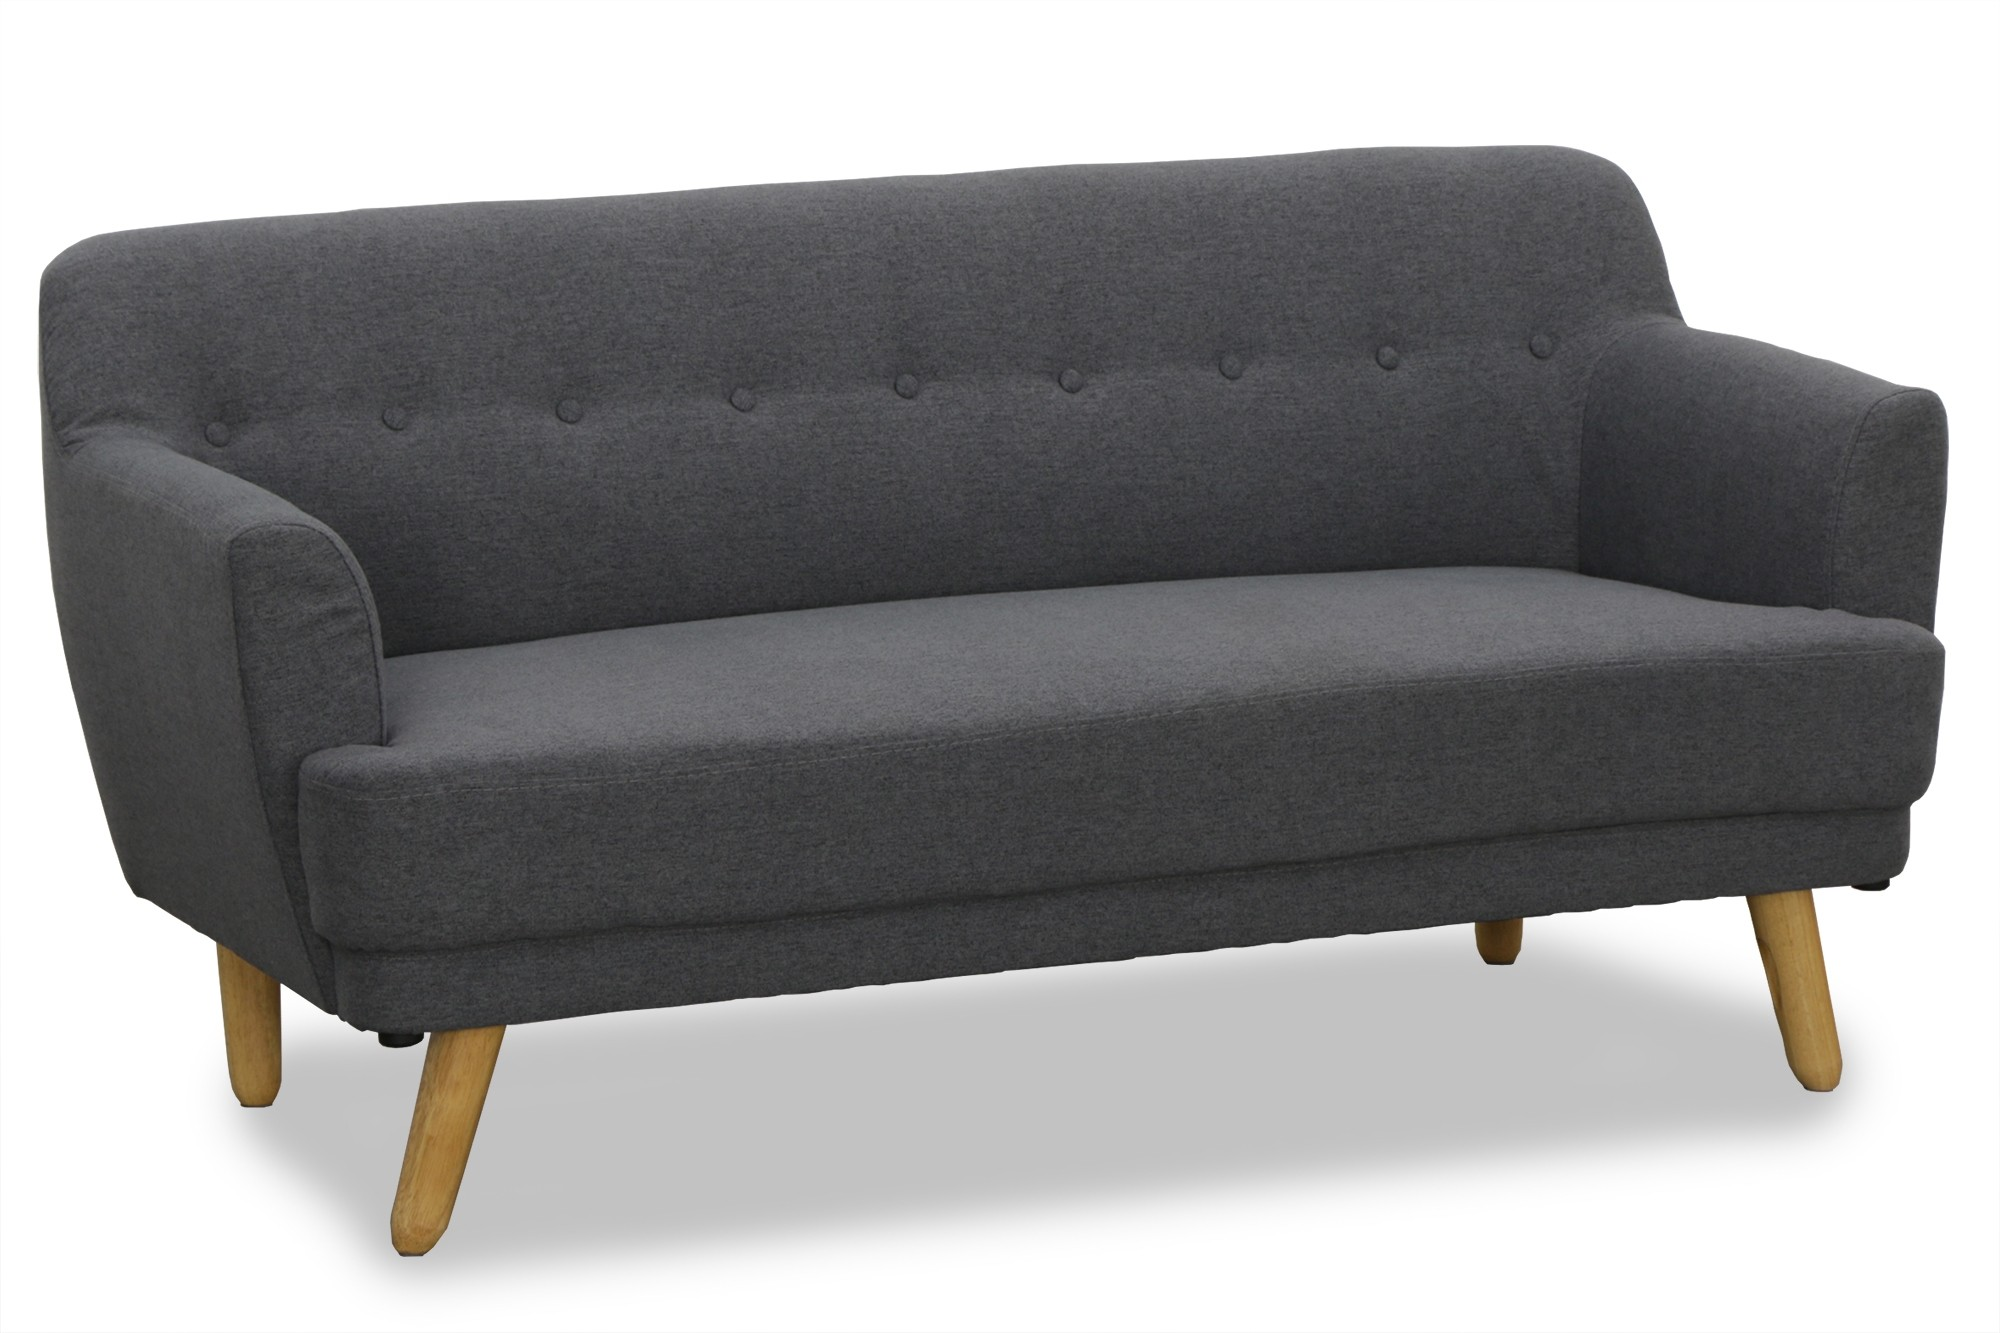 Haruki 2 Seater Sofa